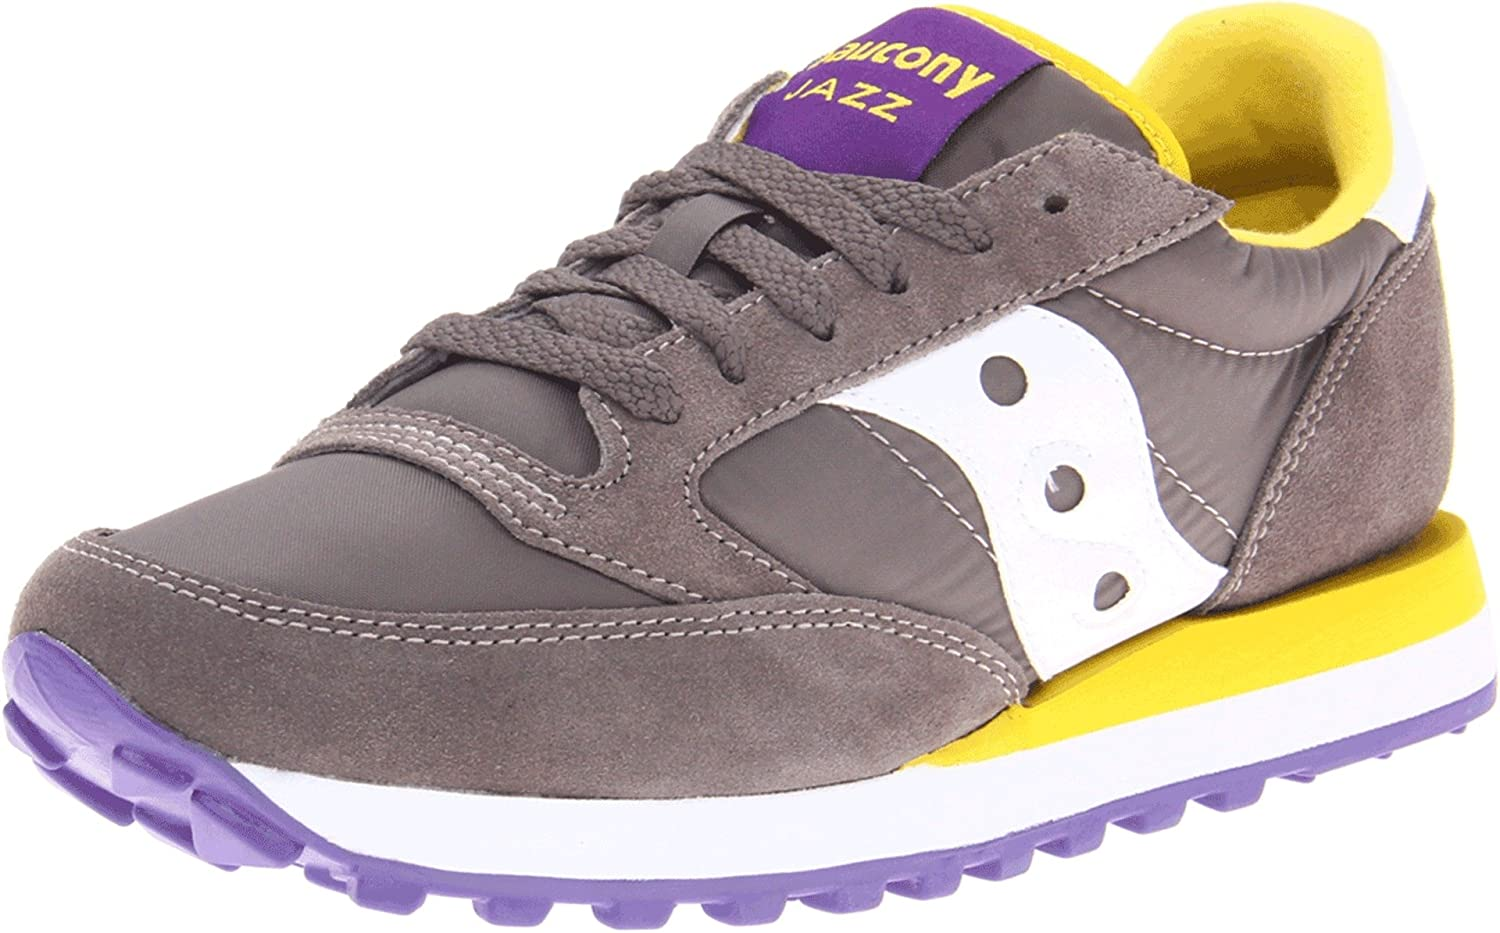 Saucony Originals Women's Jazz Original Sneaker B0083LPSMS 6 M US|Charcoal/Yellow/Purple